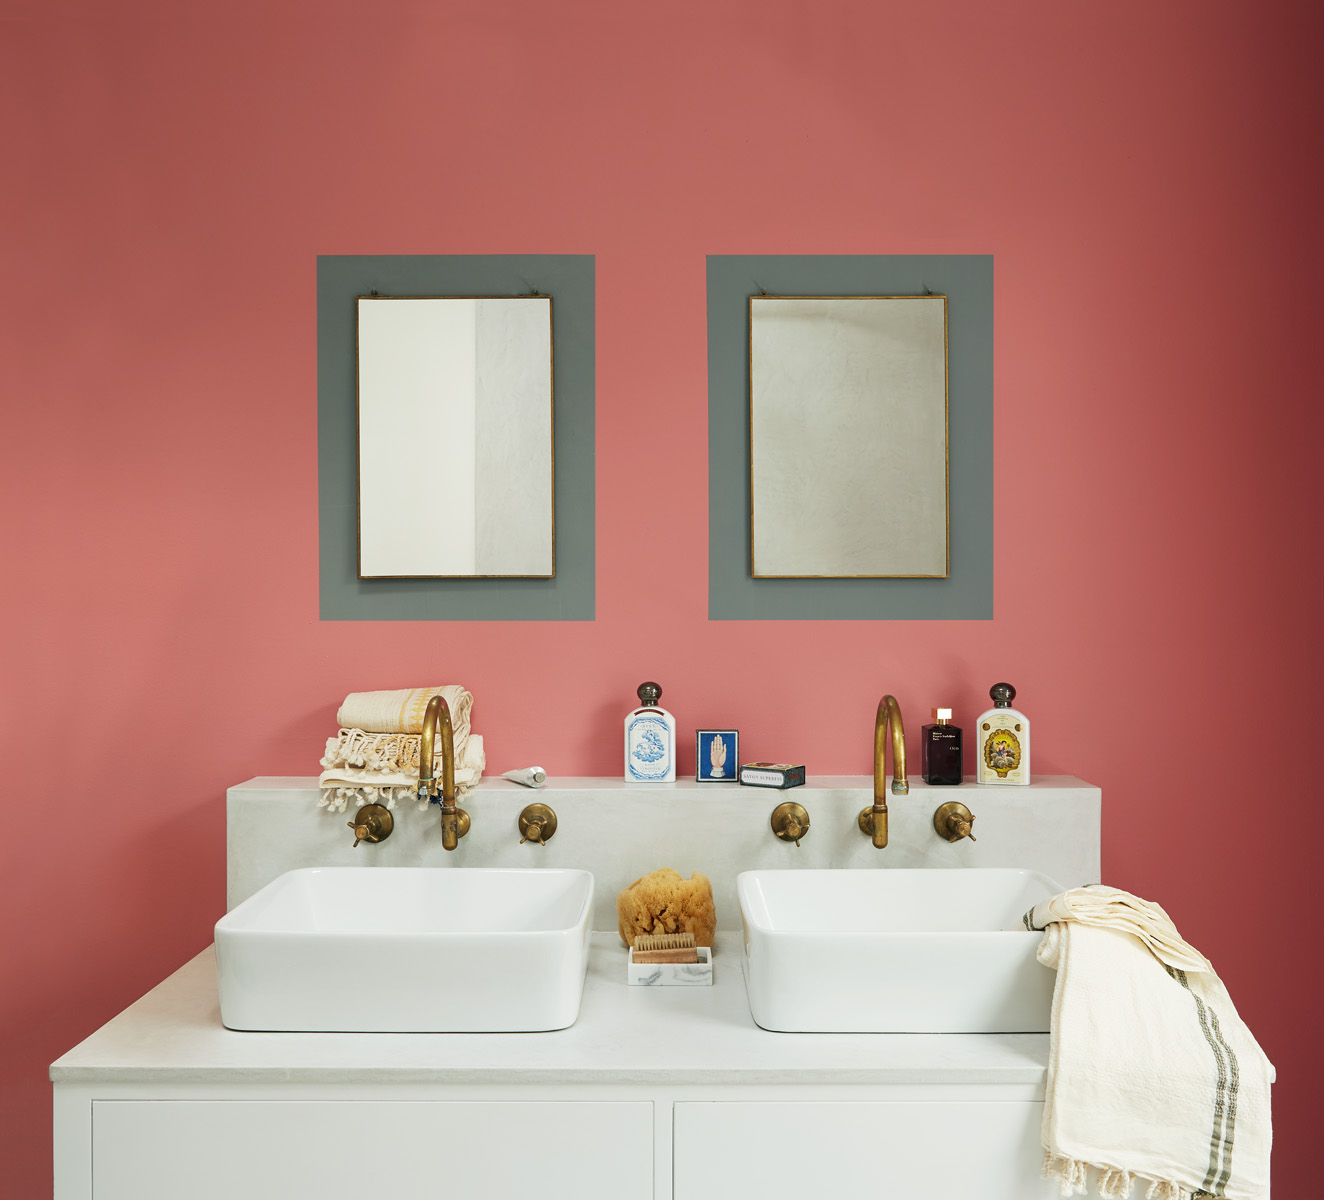 Here we've painted a border of Hippo Hooray around these mirrors